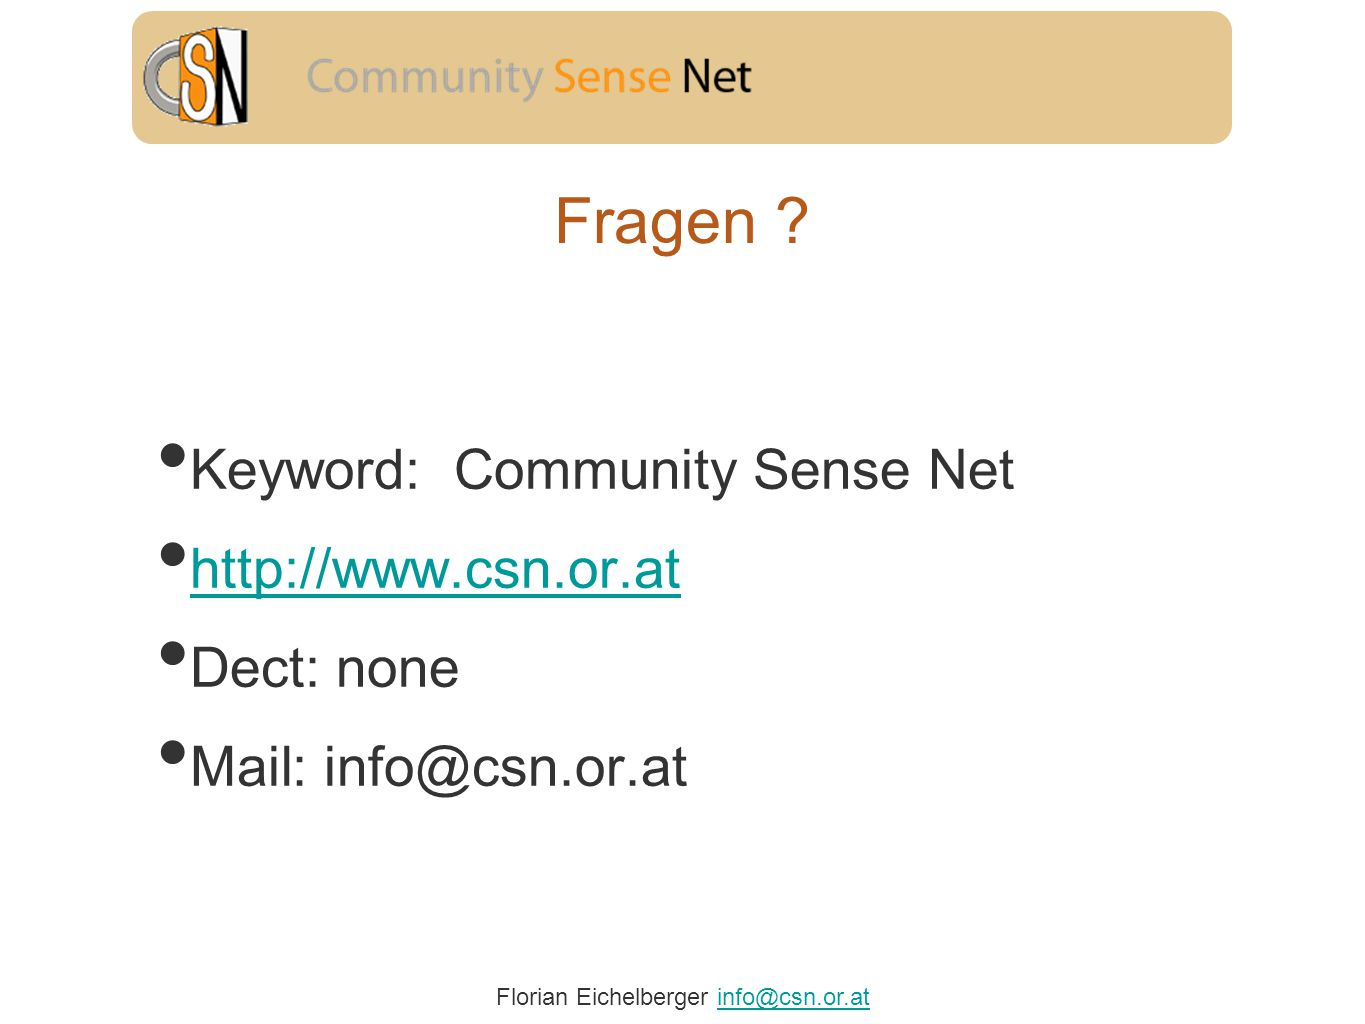 Florian Eichelberger info@csn.or.atinfo@csn.or.at Fragen ? Keyword: Community Sense Net http://www.csn.or.at Dect: none Mail: info@csn.or.at